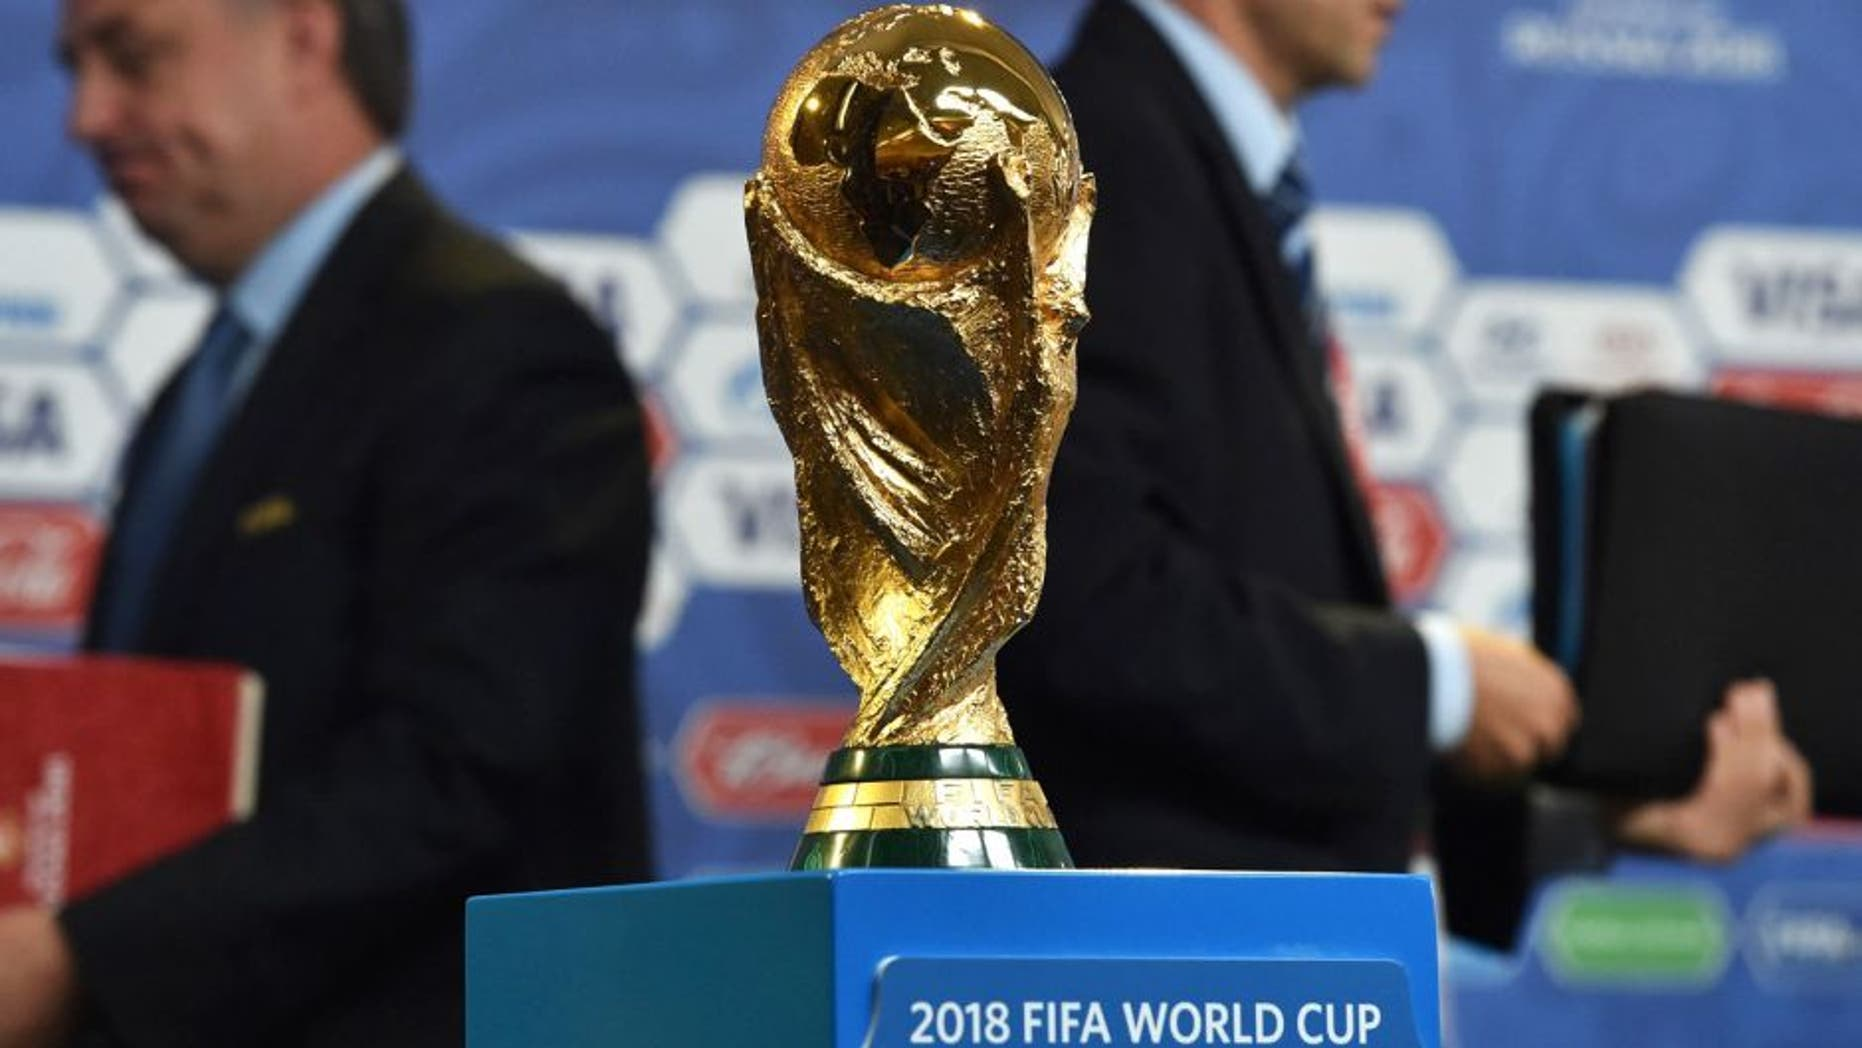 The FIFA World Cup trophy stands on a podium at a hall close to the Constantine (Konstantinovsky) Palace in St. Petersburg on July 24, 2015 on the eve of the Preliminary draw for the 2018 FIFA World Cup. The trophy created by Italian sculptor Silvio Gazzaniga for the 1974 World Cup, measures 36cm in height, is made out of 18-carat gold and weighs 6175g. AFP PHOTO / KIRILL KUDRYAVTSEV (Photo credit should read KIRILL KUDRYAVTSEV/AFP/Getty Images)